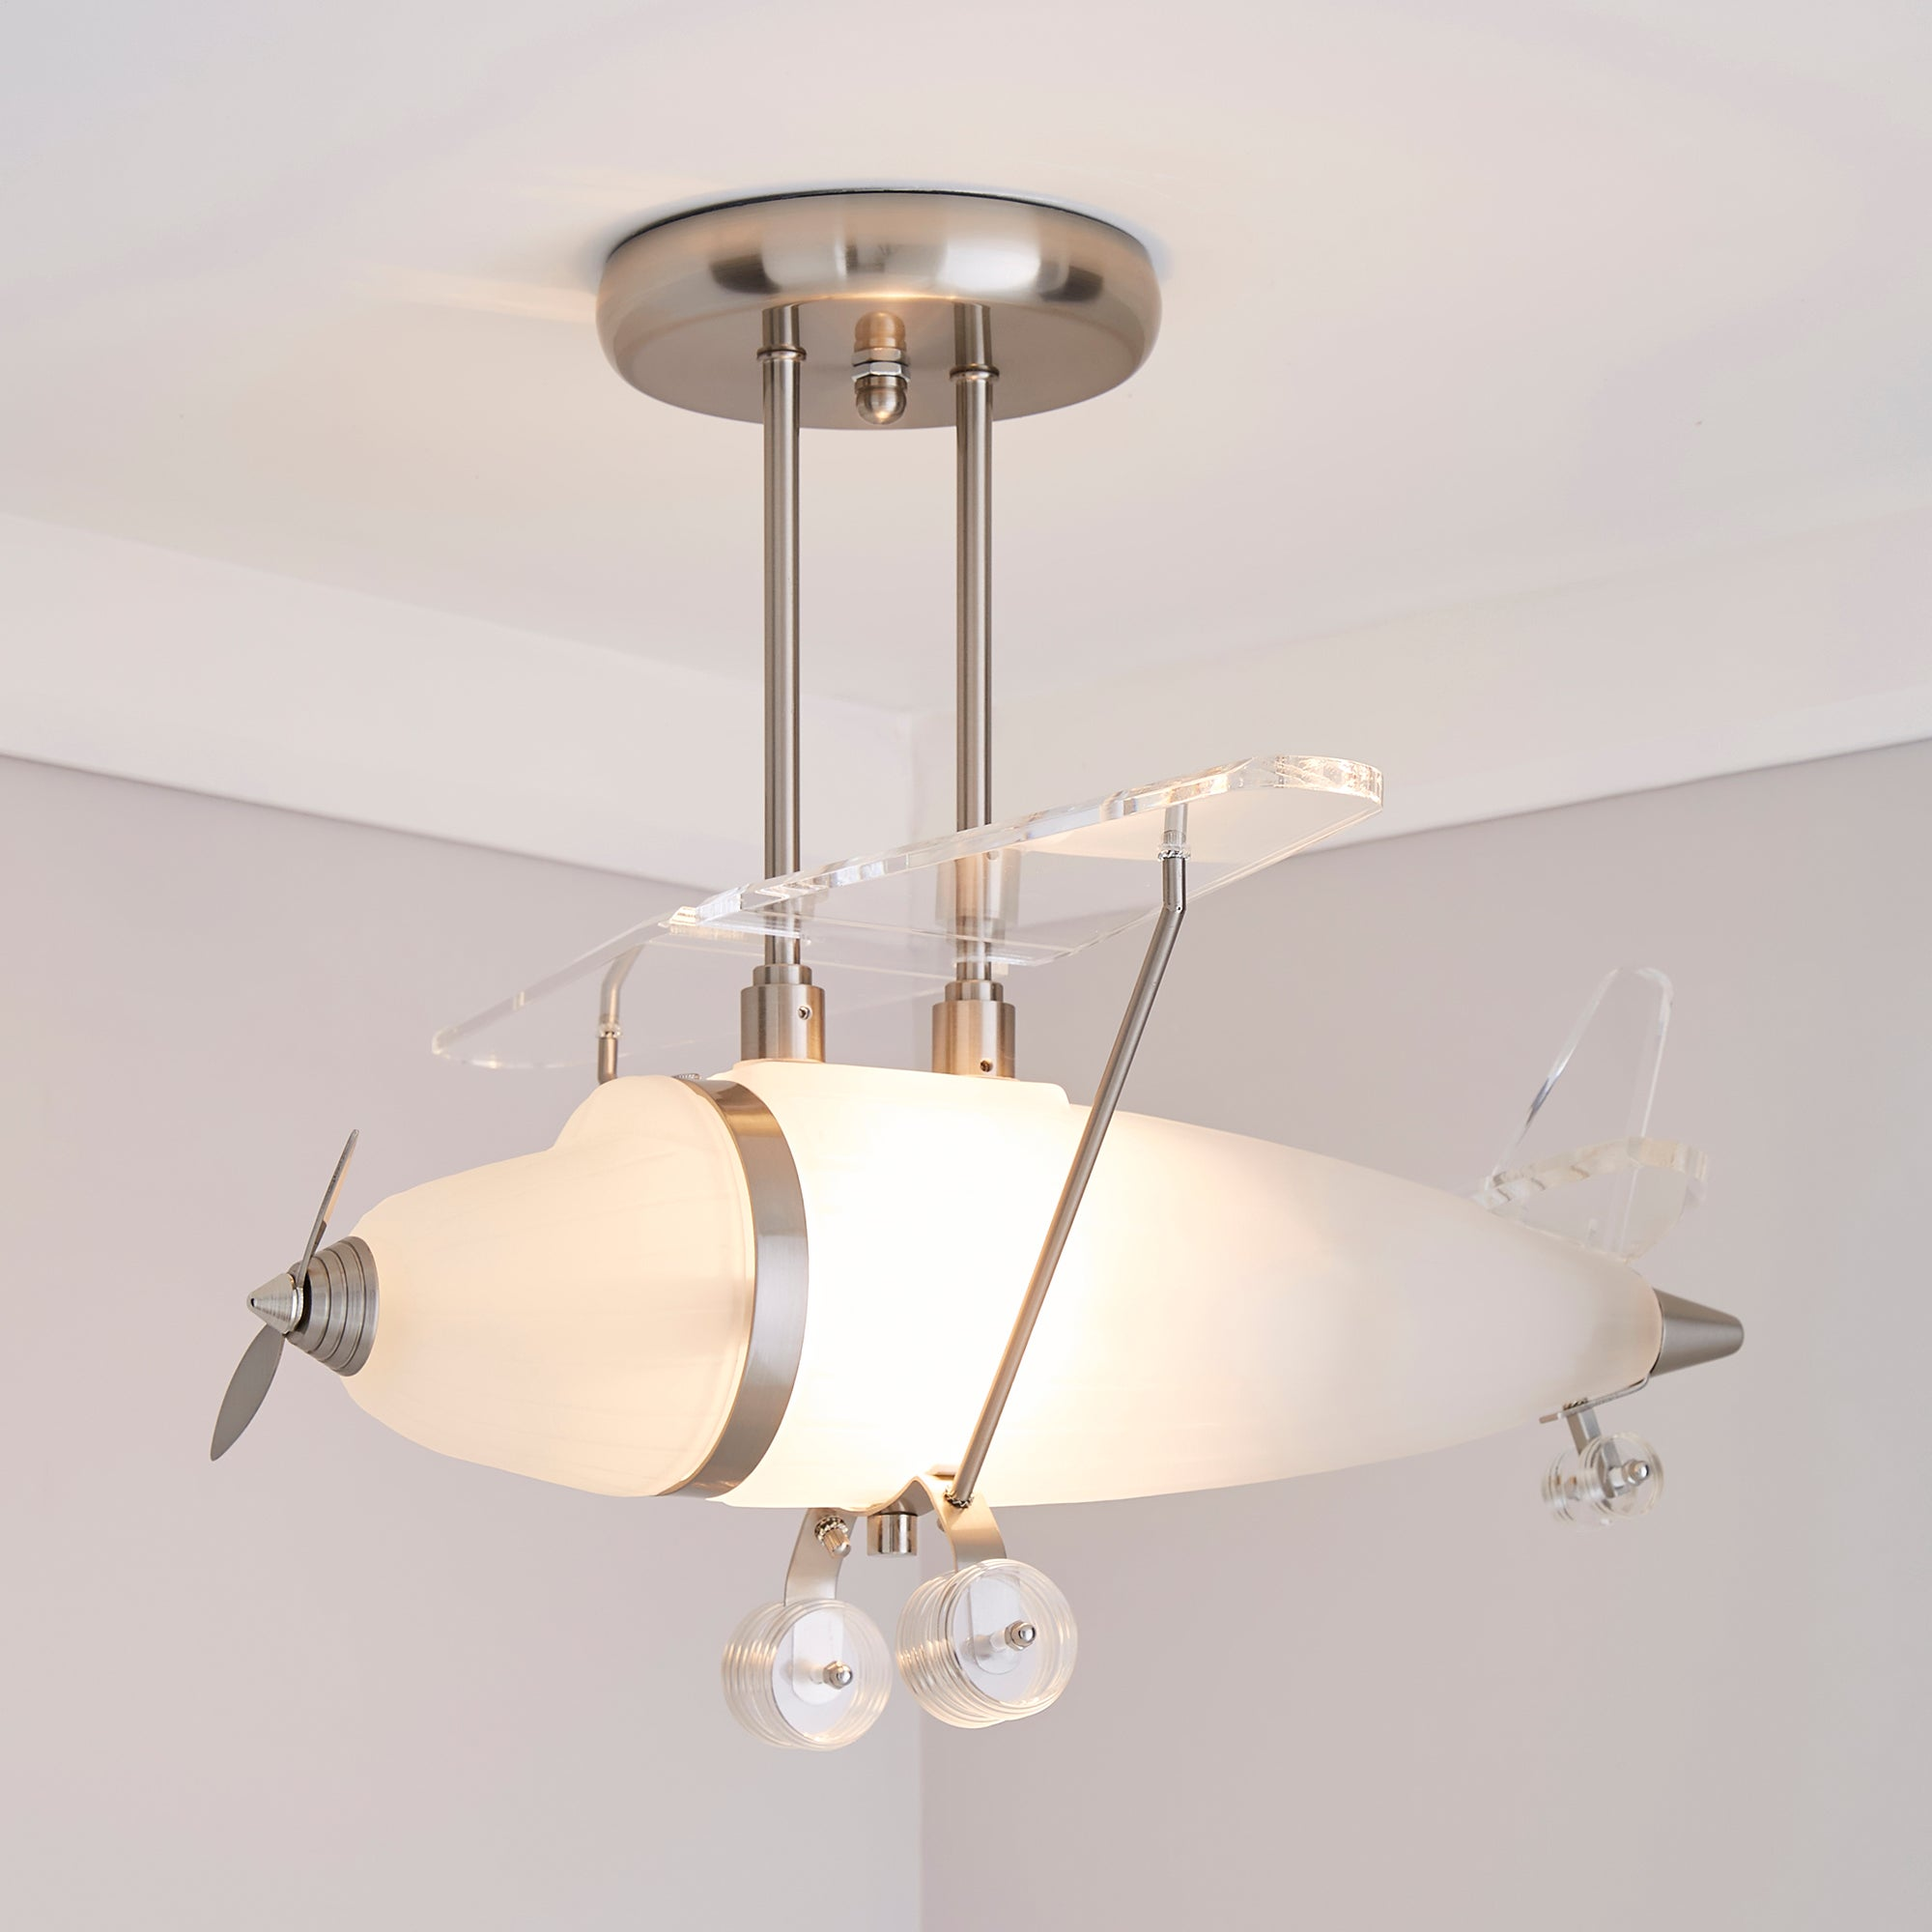 Airplane Light Ceiling Fitting